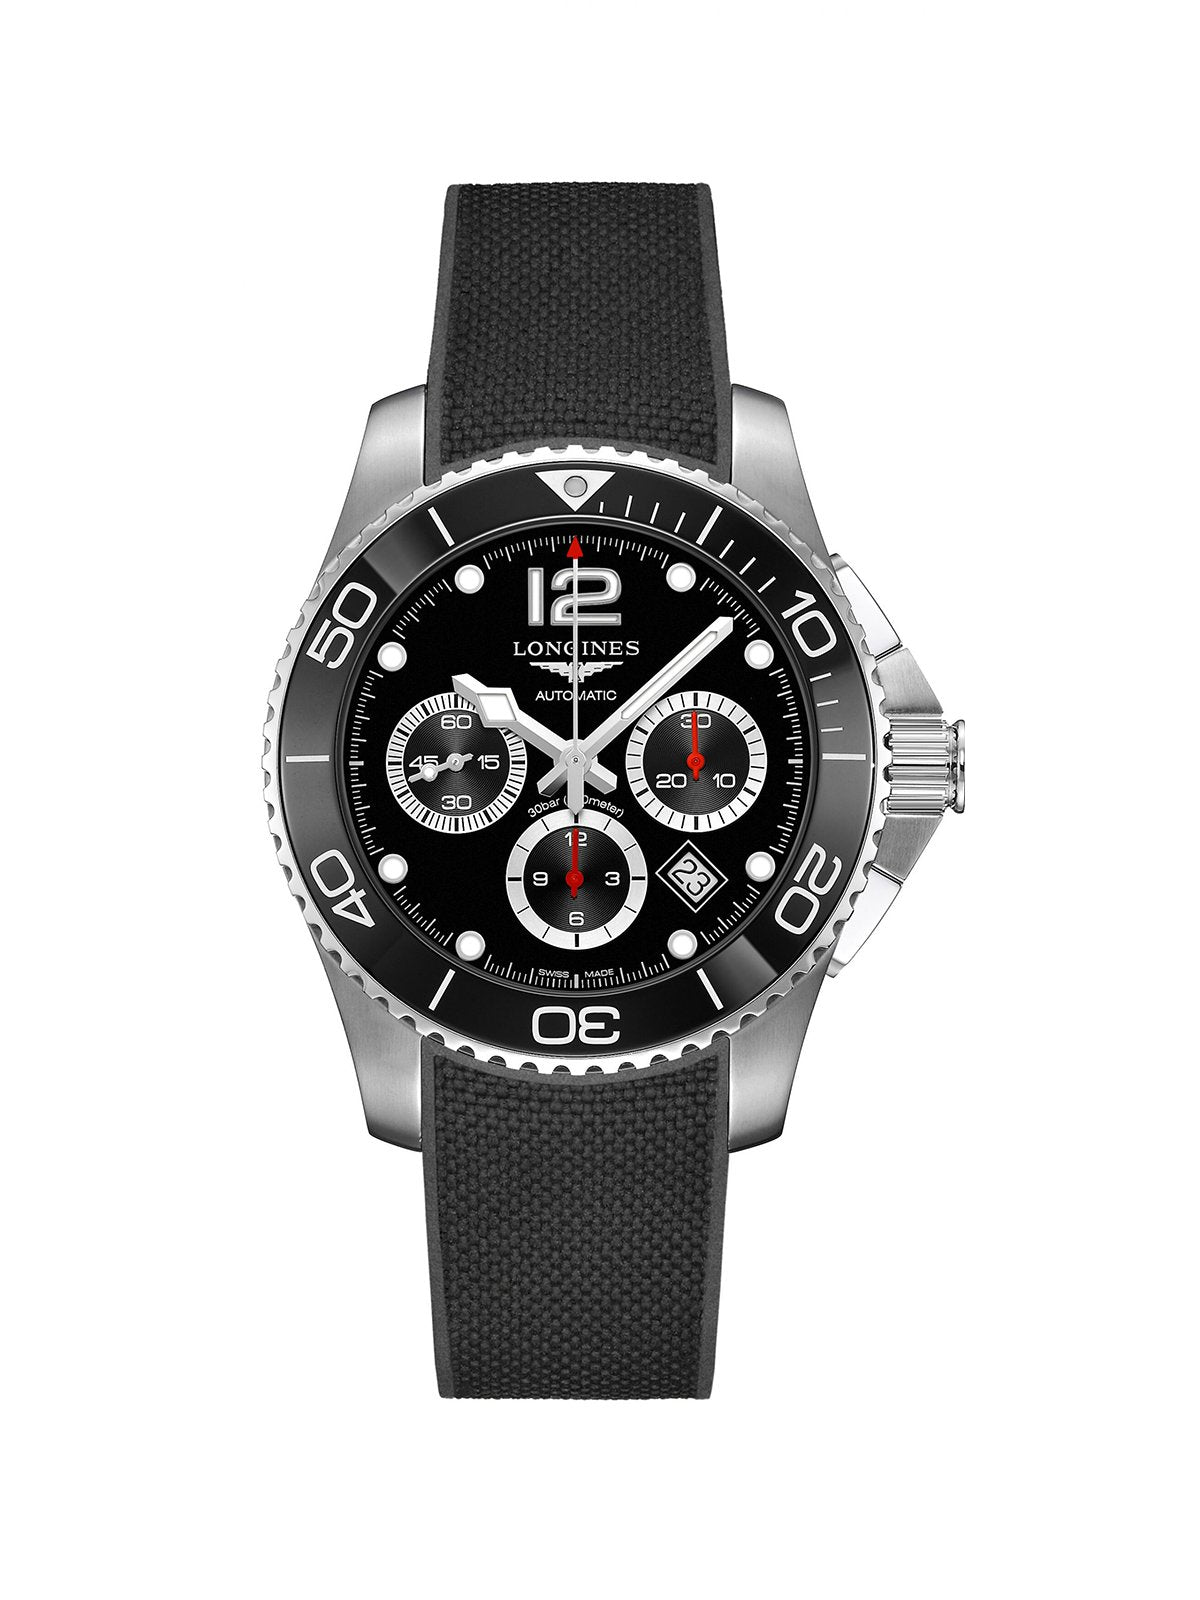 L3.883.4.56.9 Longines Gents 43mm HydroConquest Steel Automatic Chronograph Watch on Rubber Strap